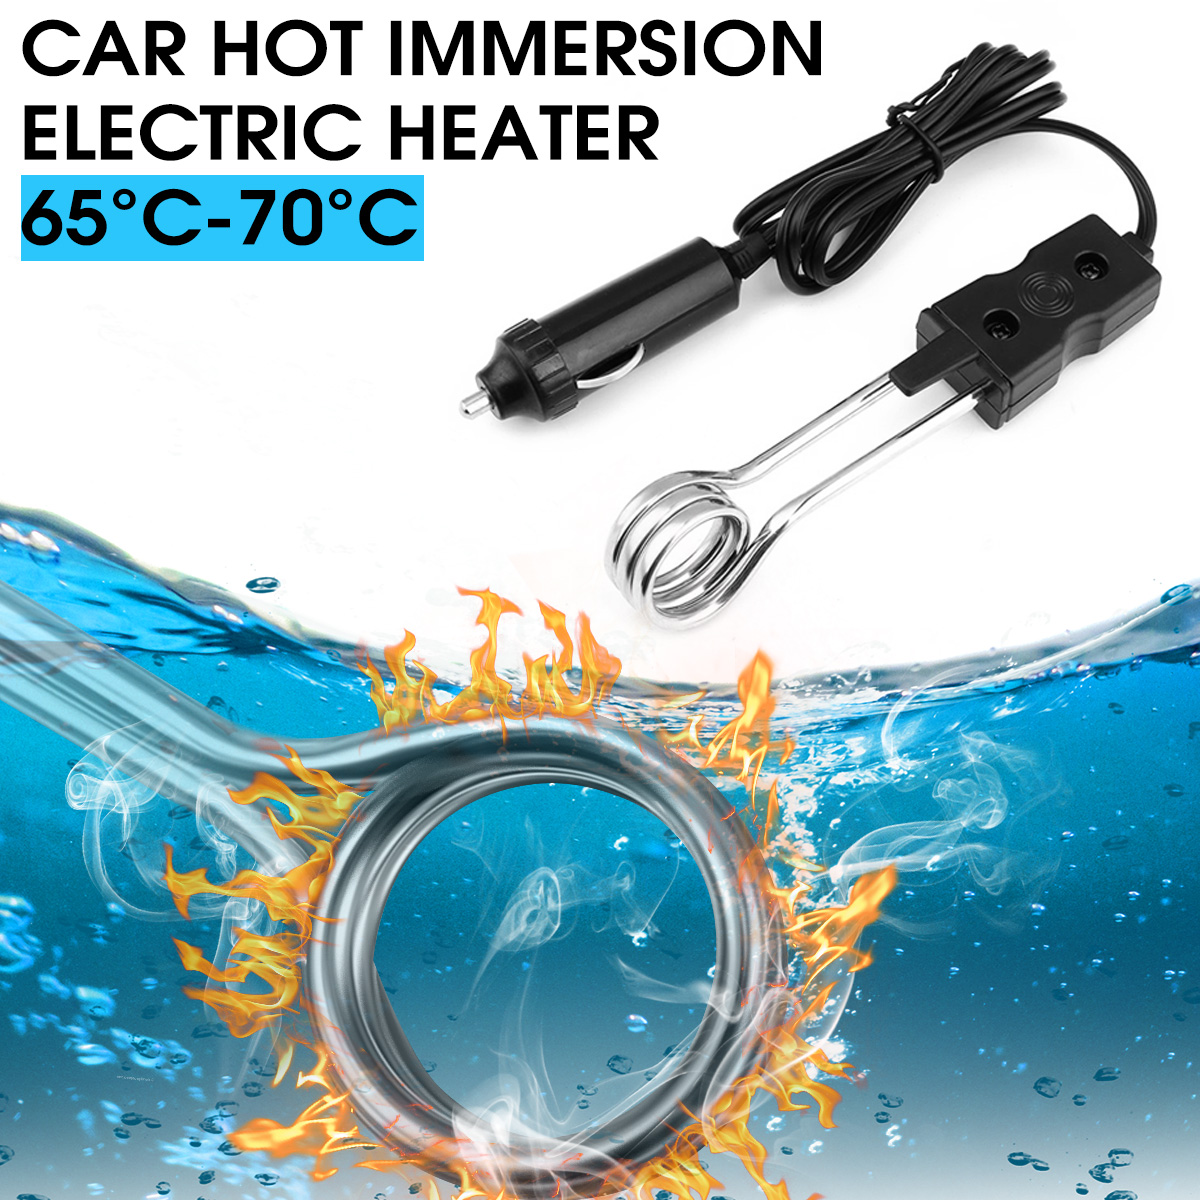 Best Price  Black 12V 120w Hot Immersion Electric Heater Element Kettle Mug Water Tea Coffee Car